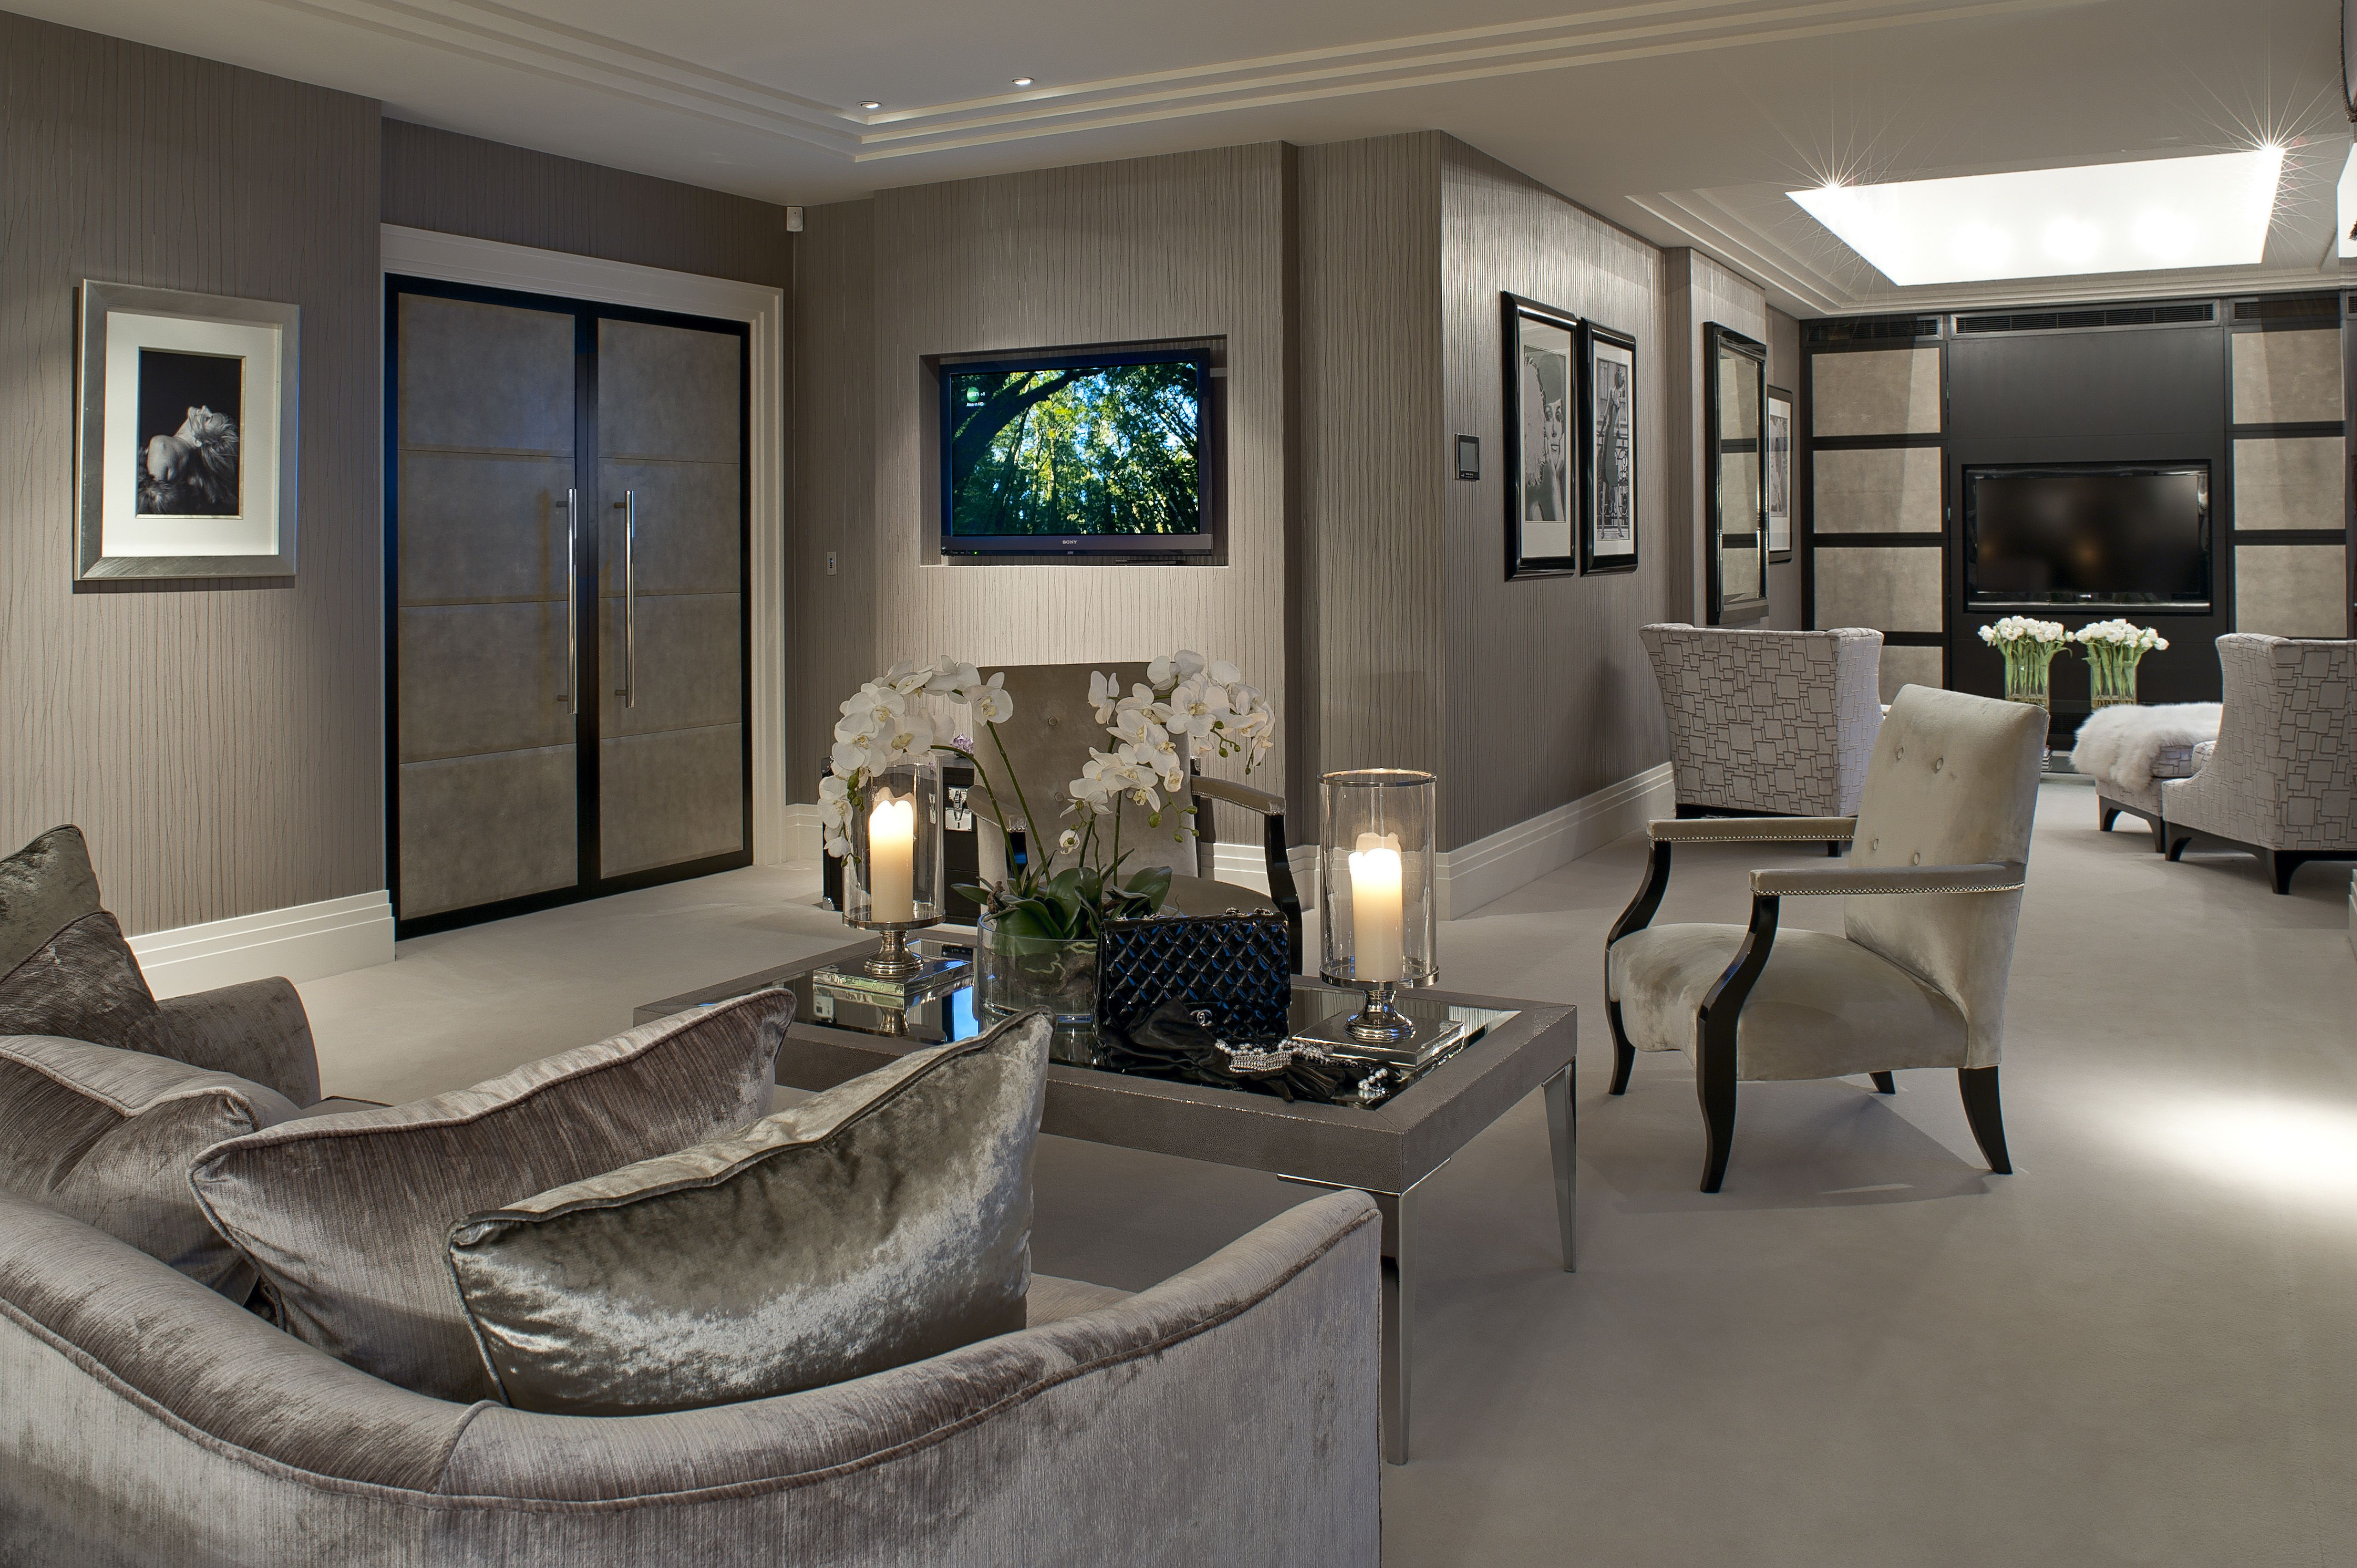 Amazing Project By Hillhouselondon Interior Design London See More Inspiring Projects At